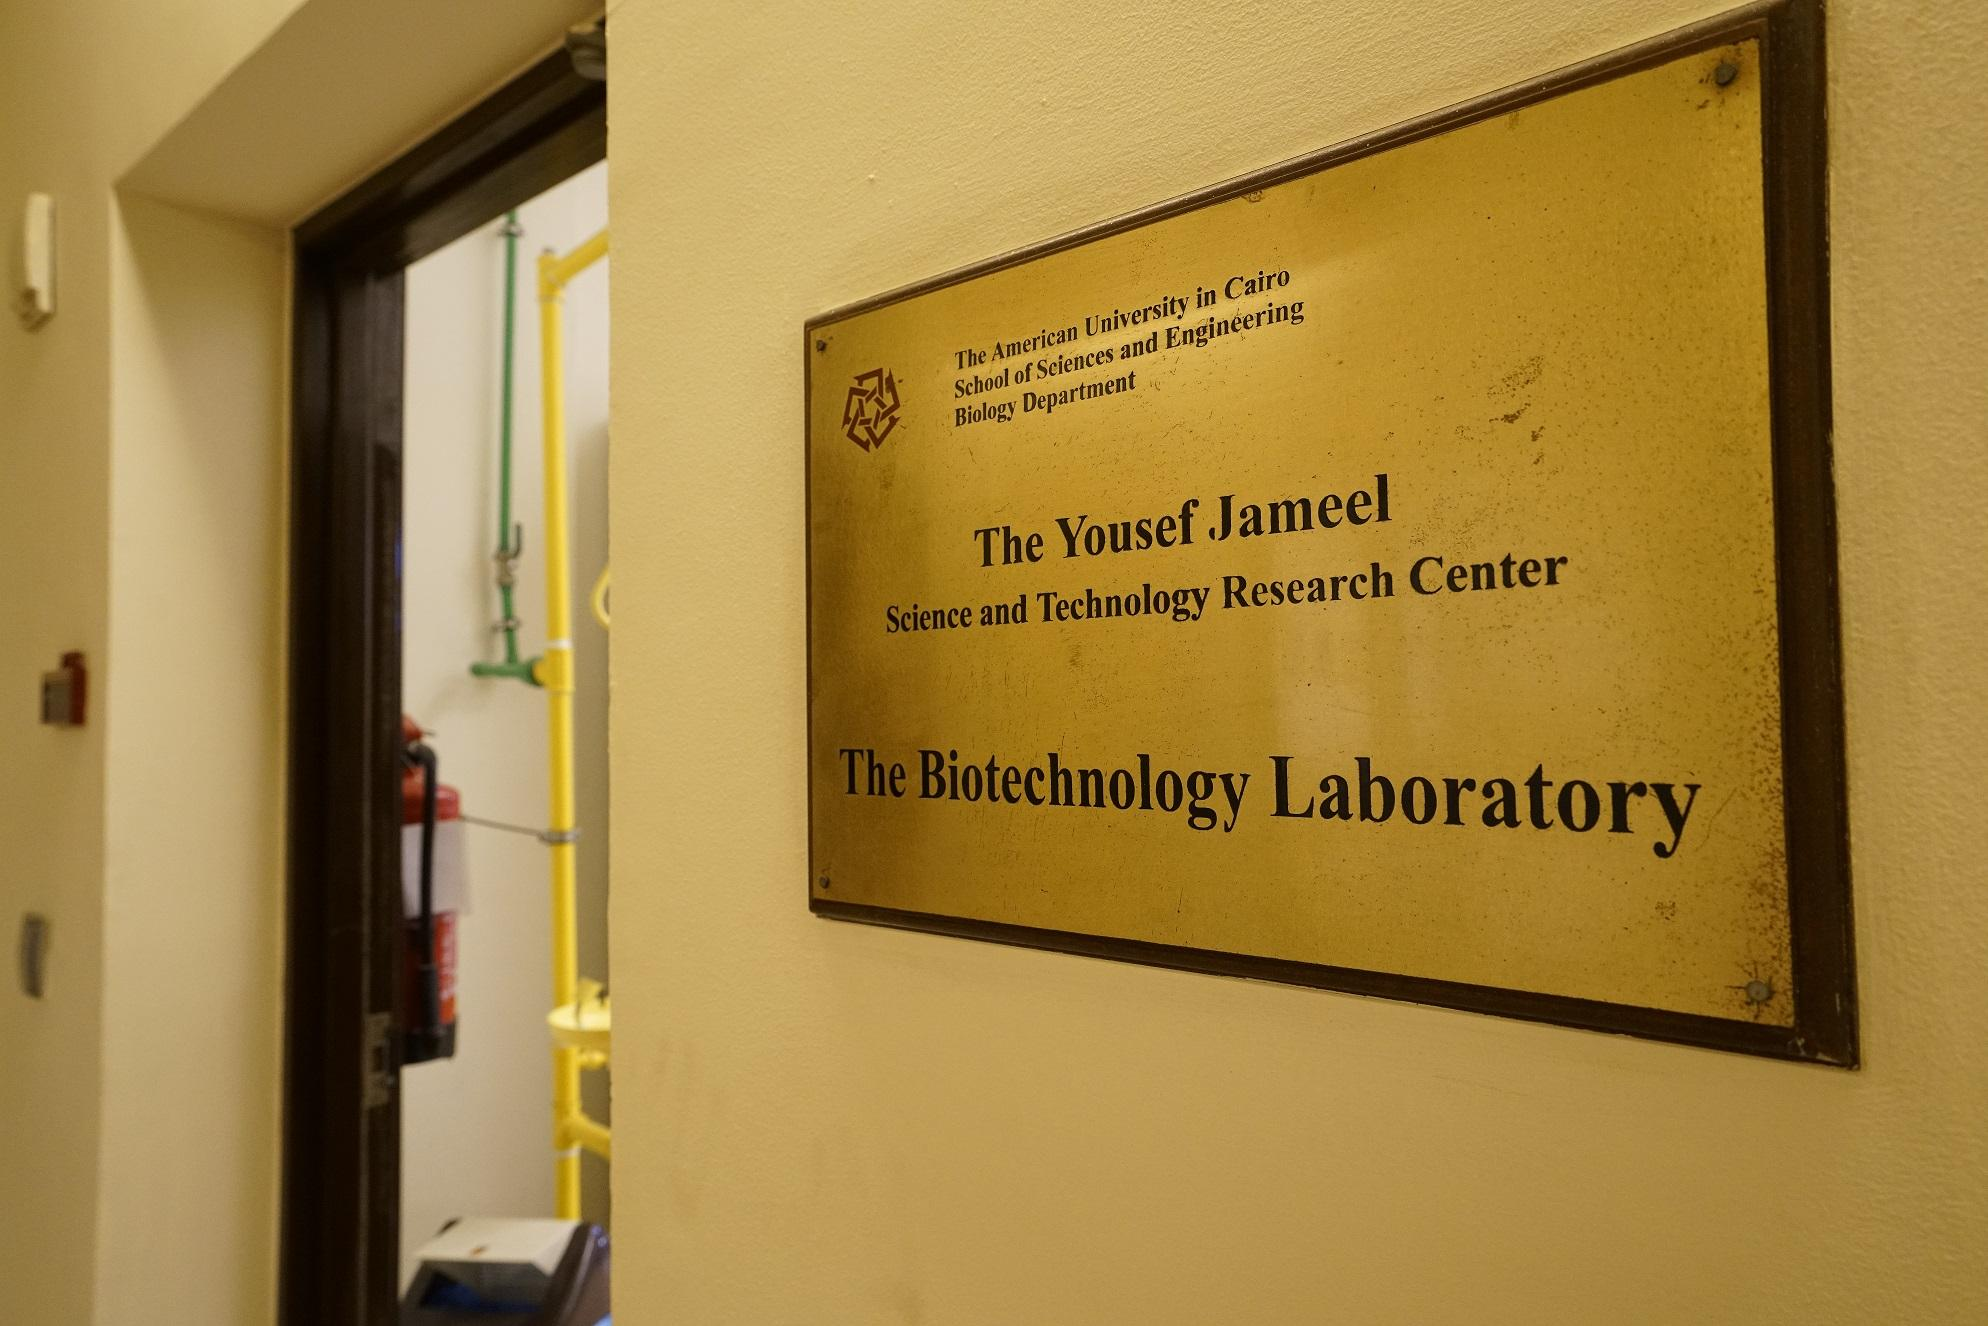 Yousef Jameel Science and Technology Research Center